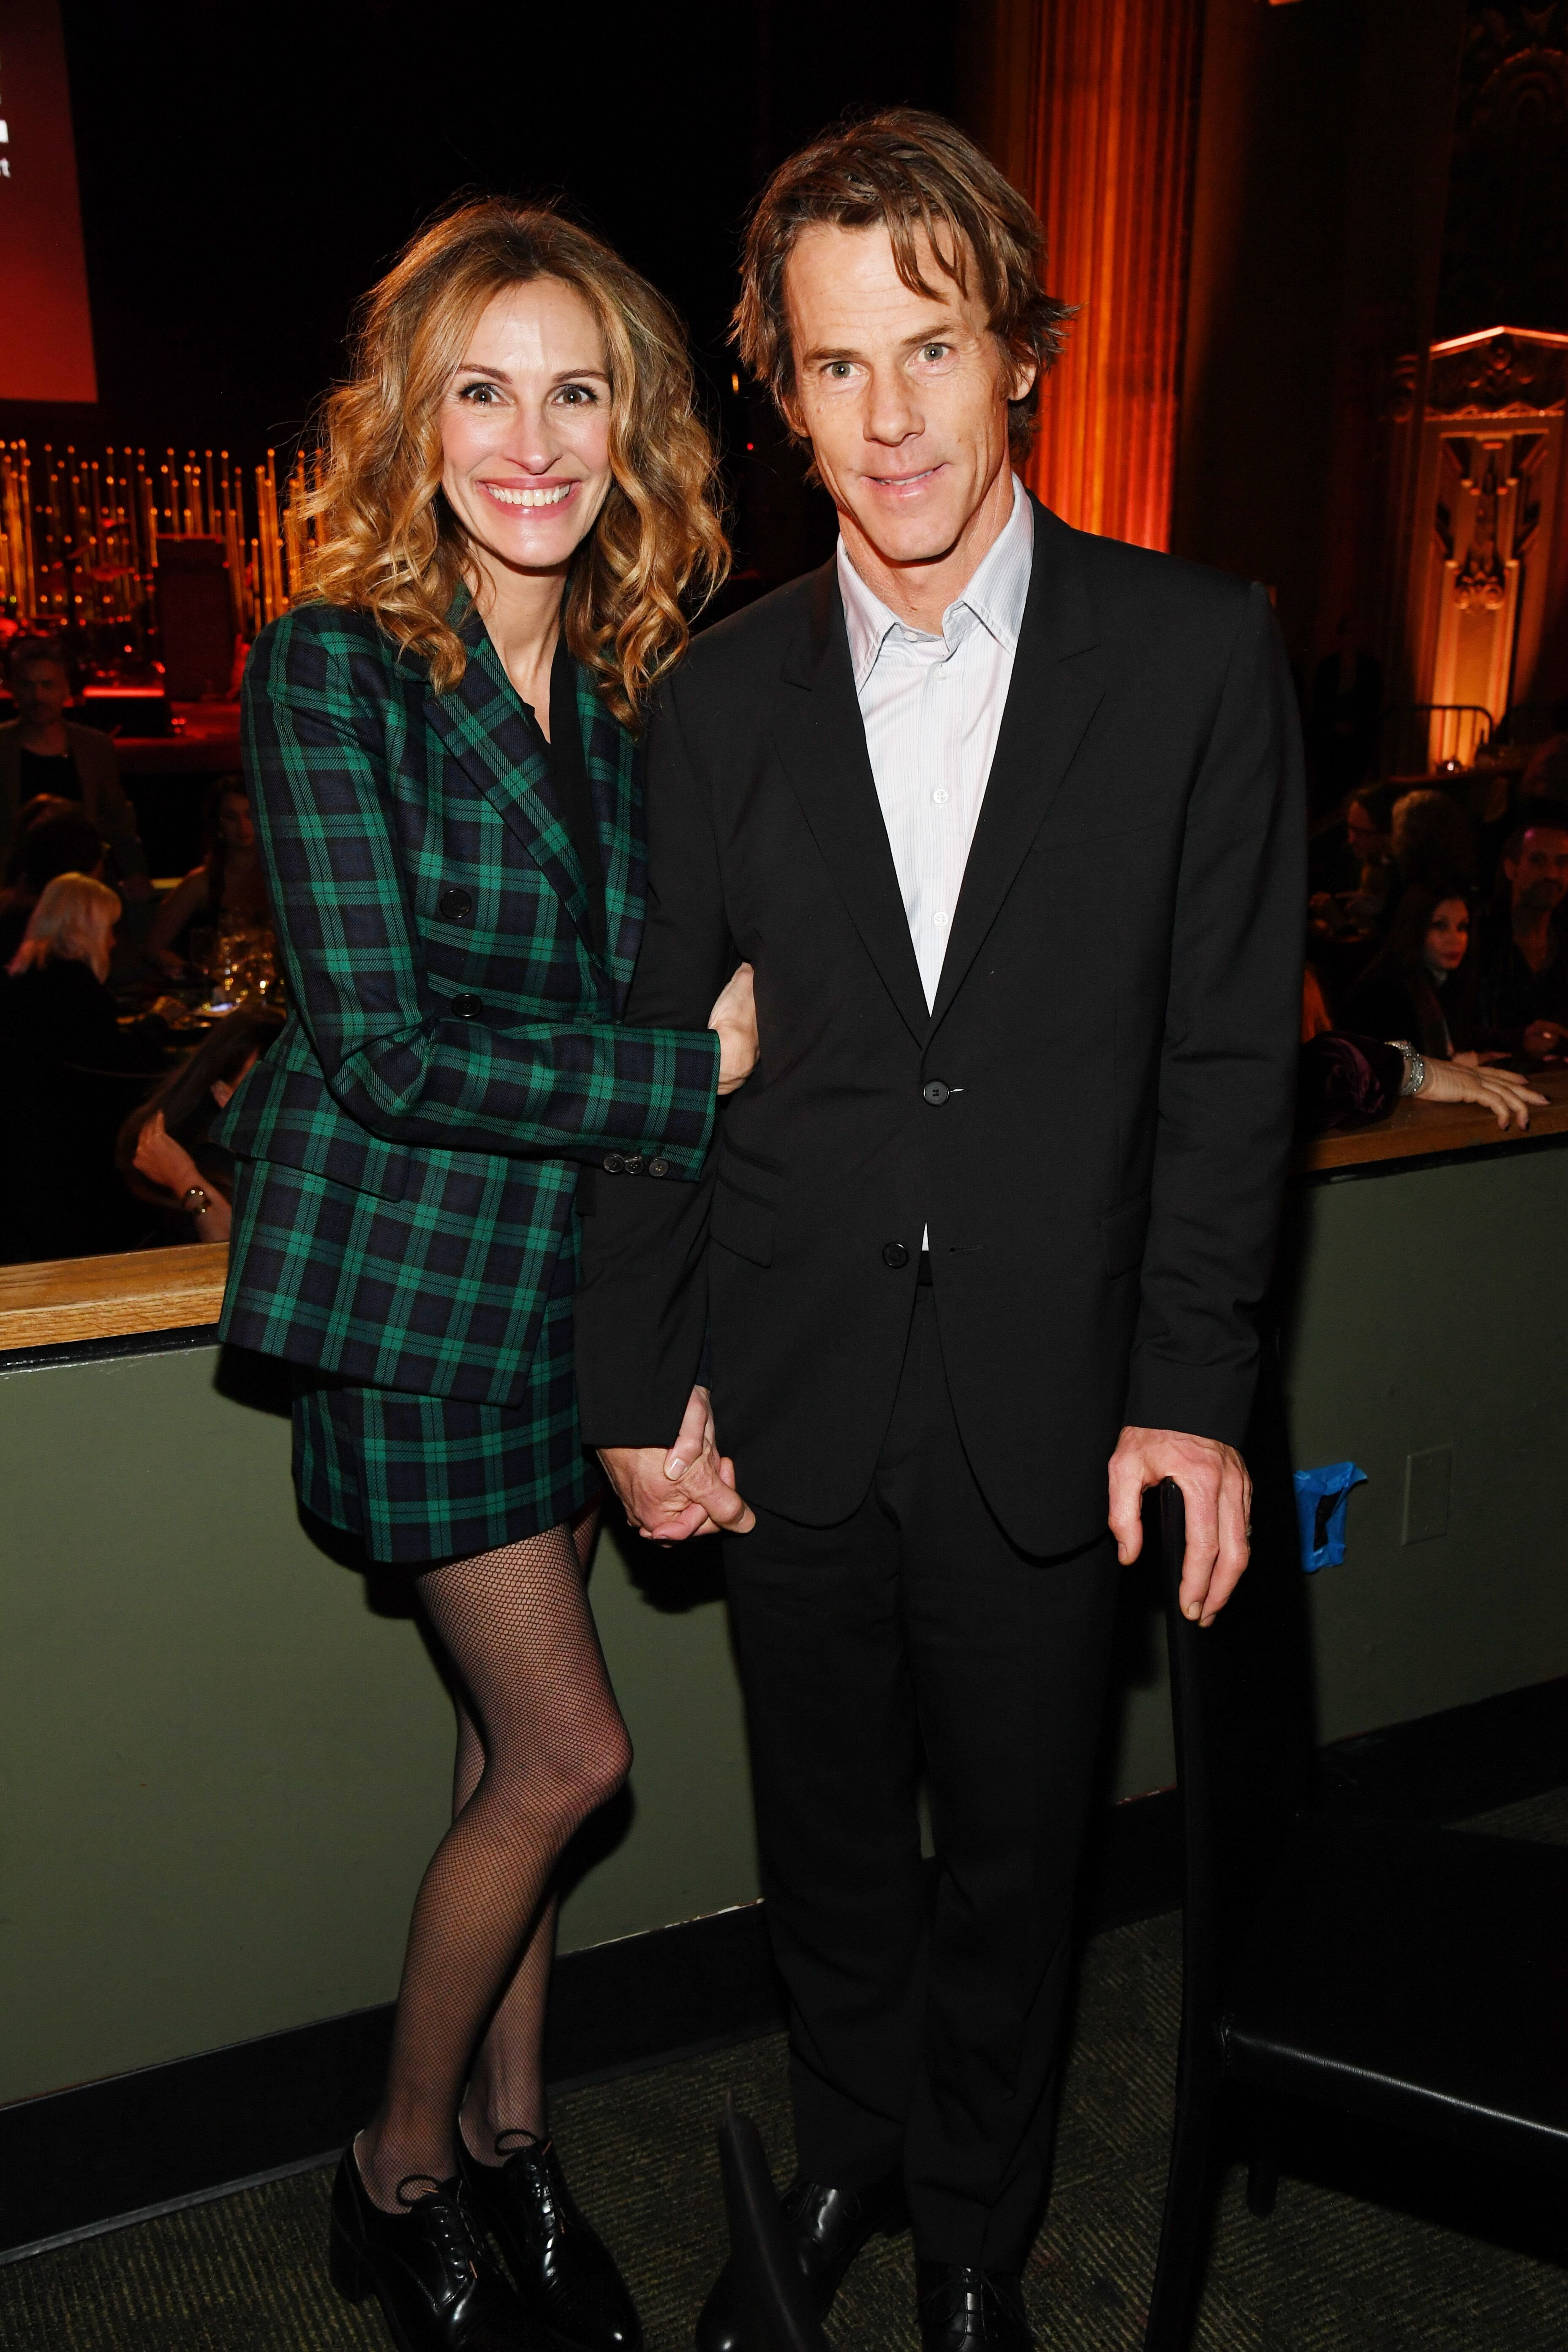 Julia Roberts and Daniel Moder attend CORE Gala: A Gala Dinner to Benefit CORE  on January 15, 2020. | Photo: Getty Images